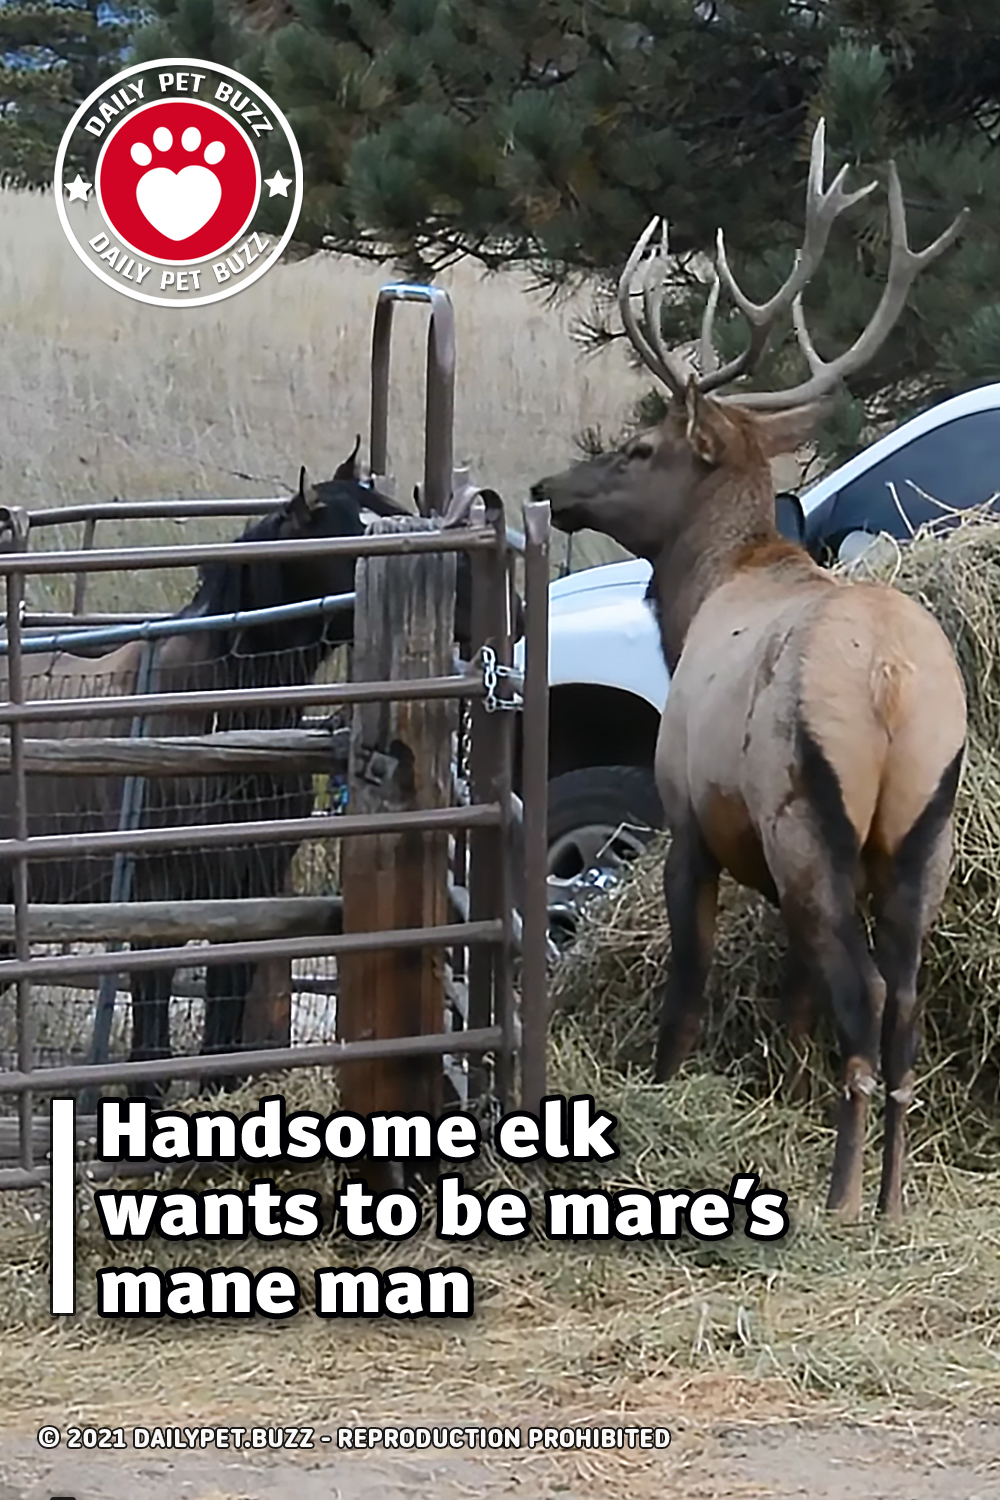 Handsome elk wants to be mare's mane man